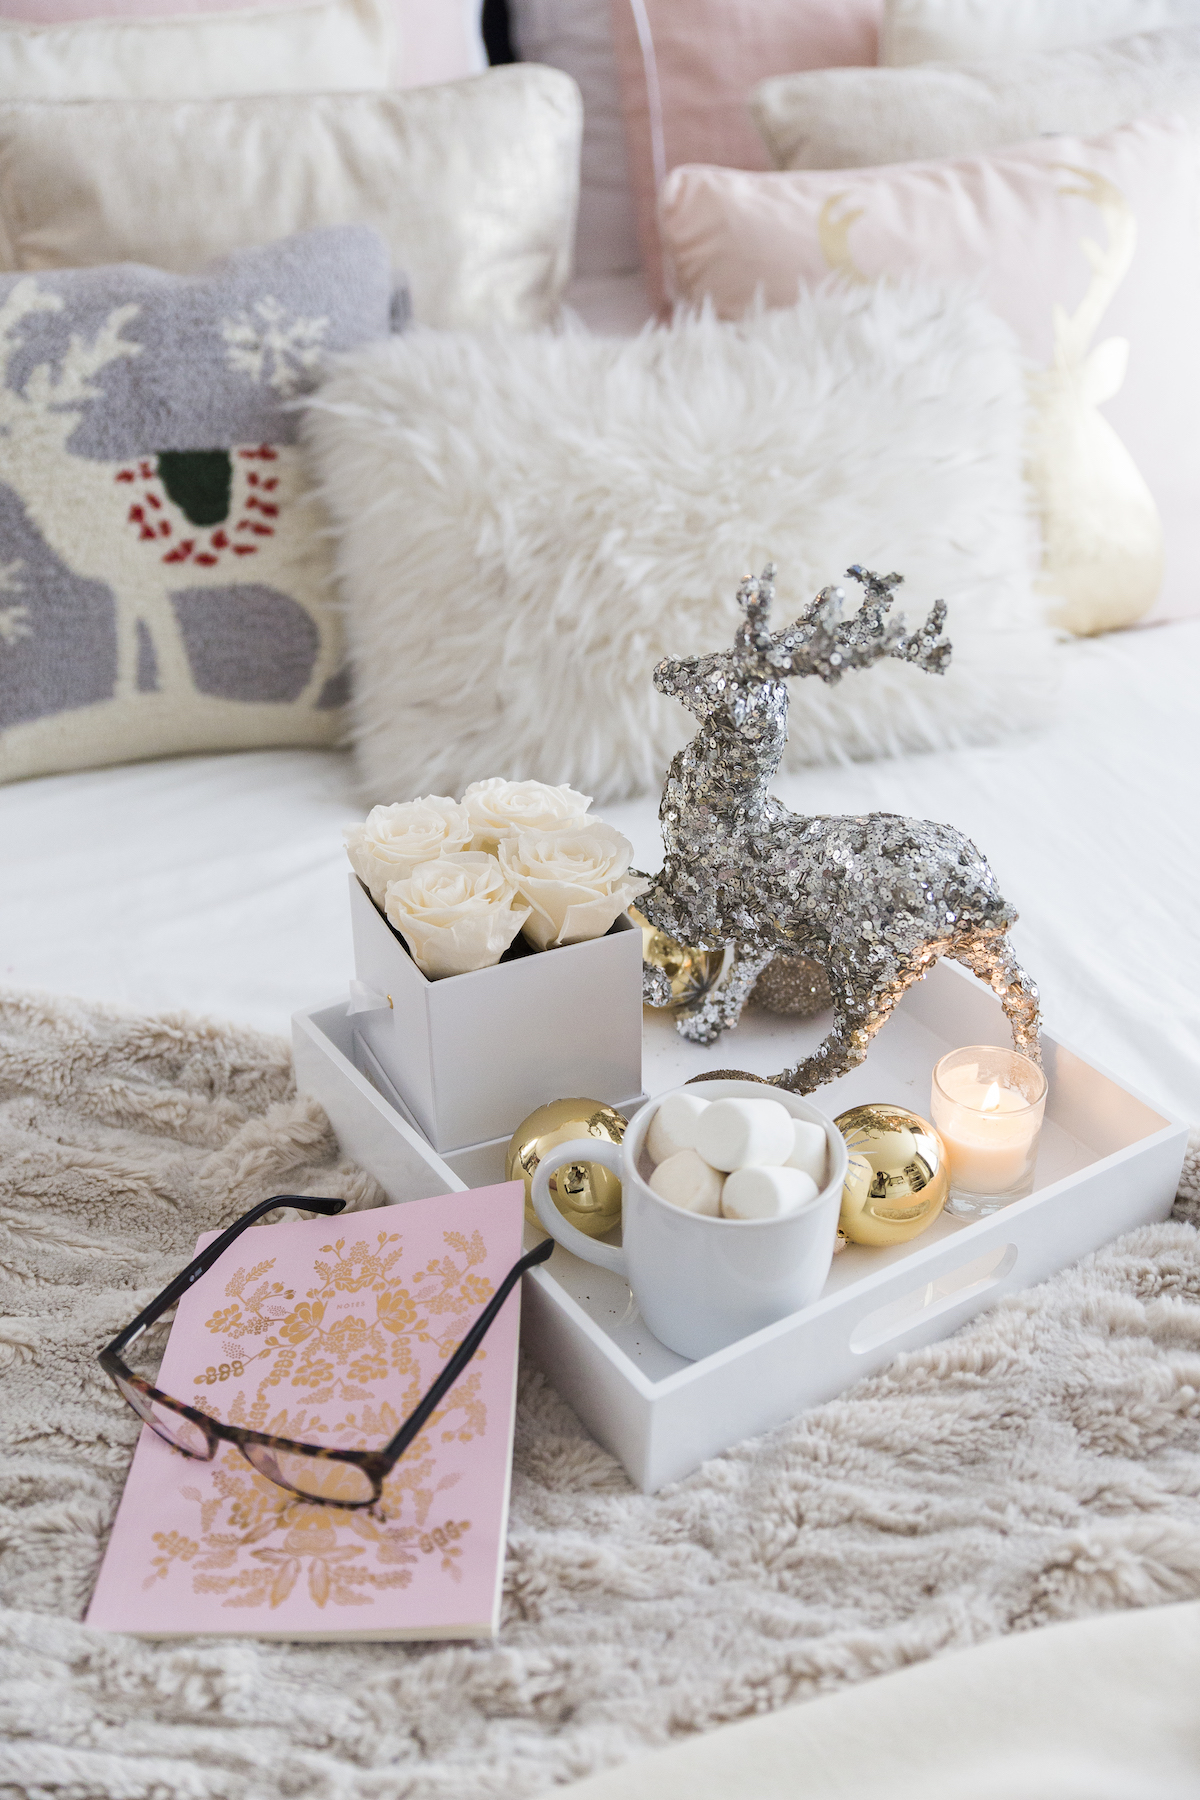 Cozy Holiday Decorative Tray